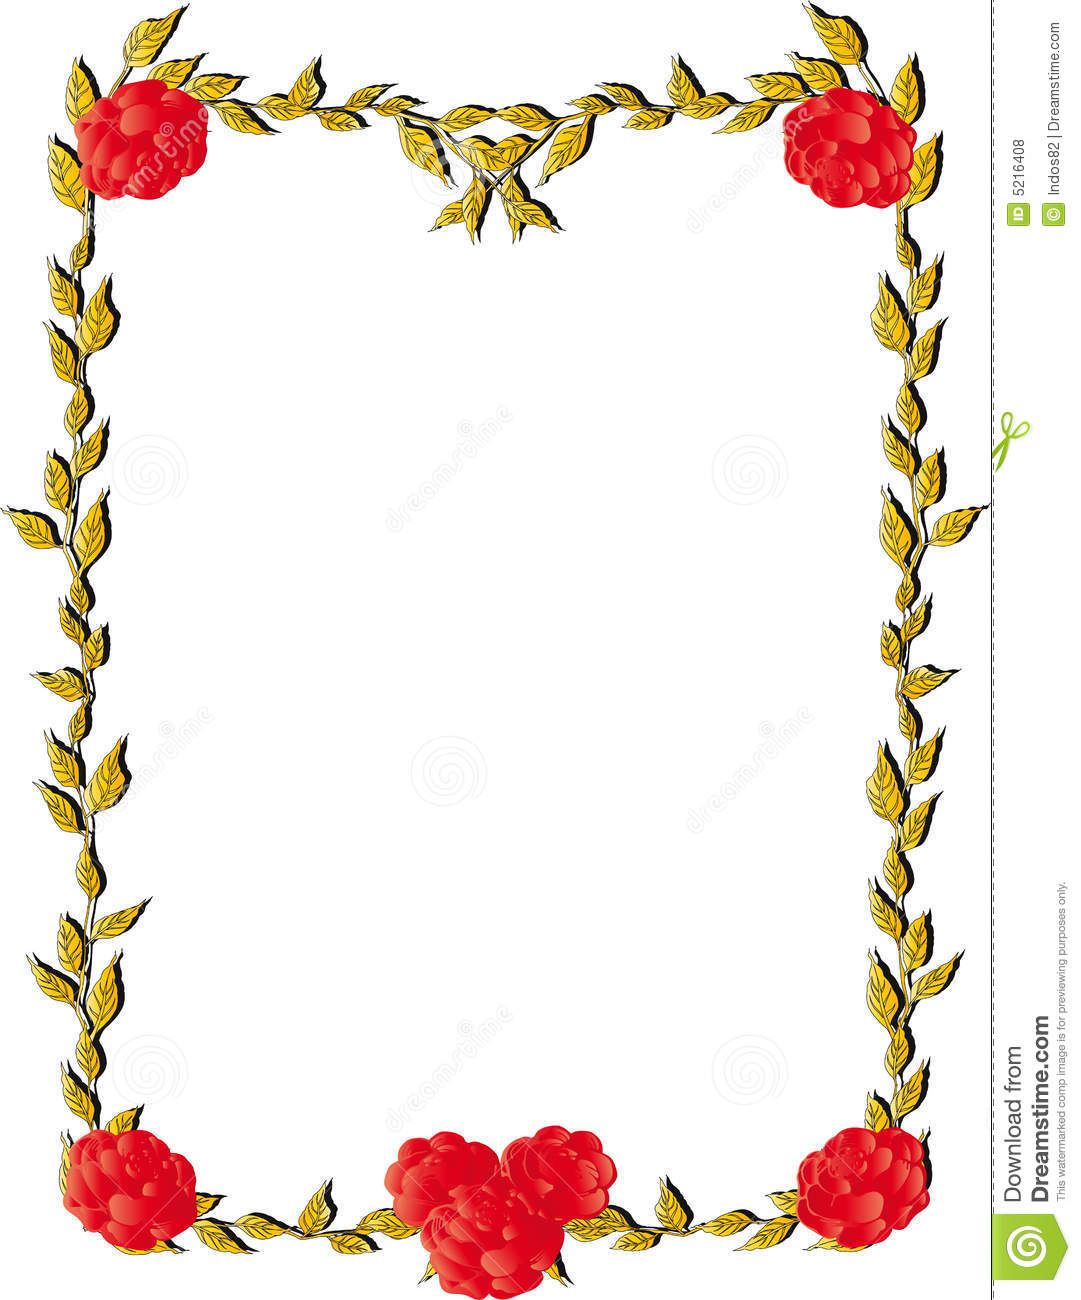 Rose Border Illustration Royalty Free Stock Photos Image